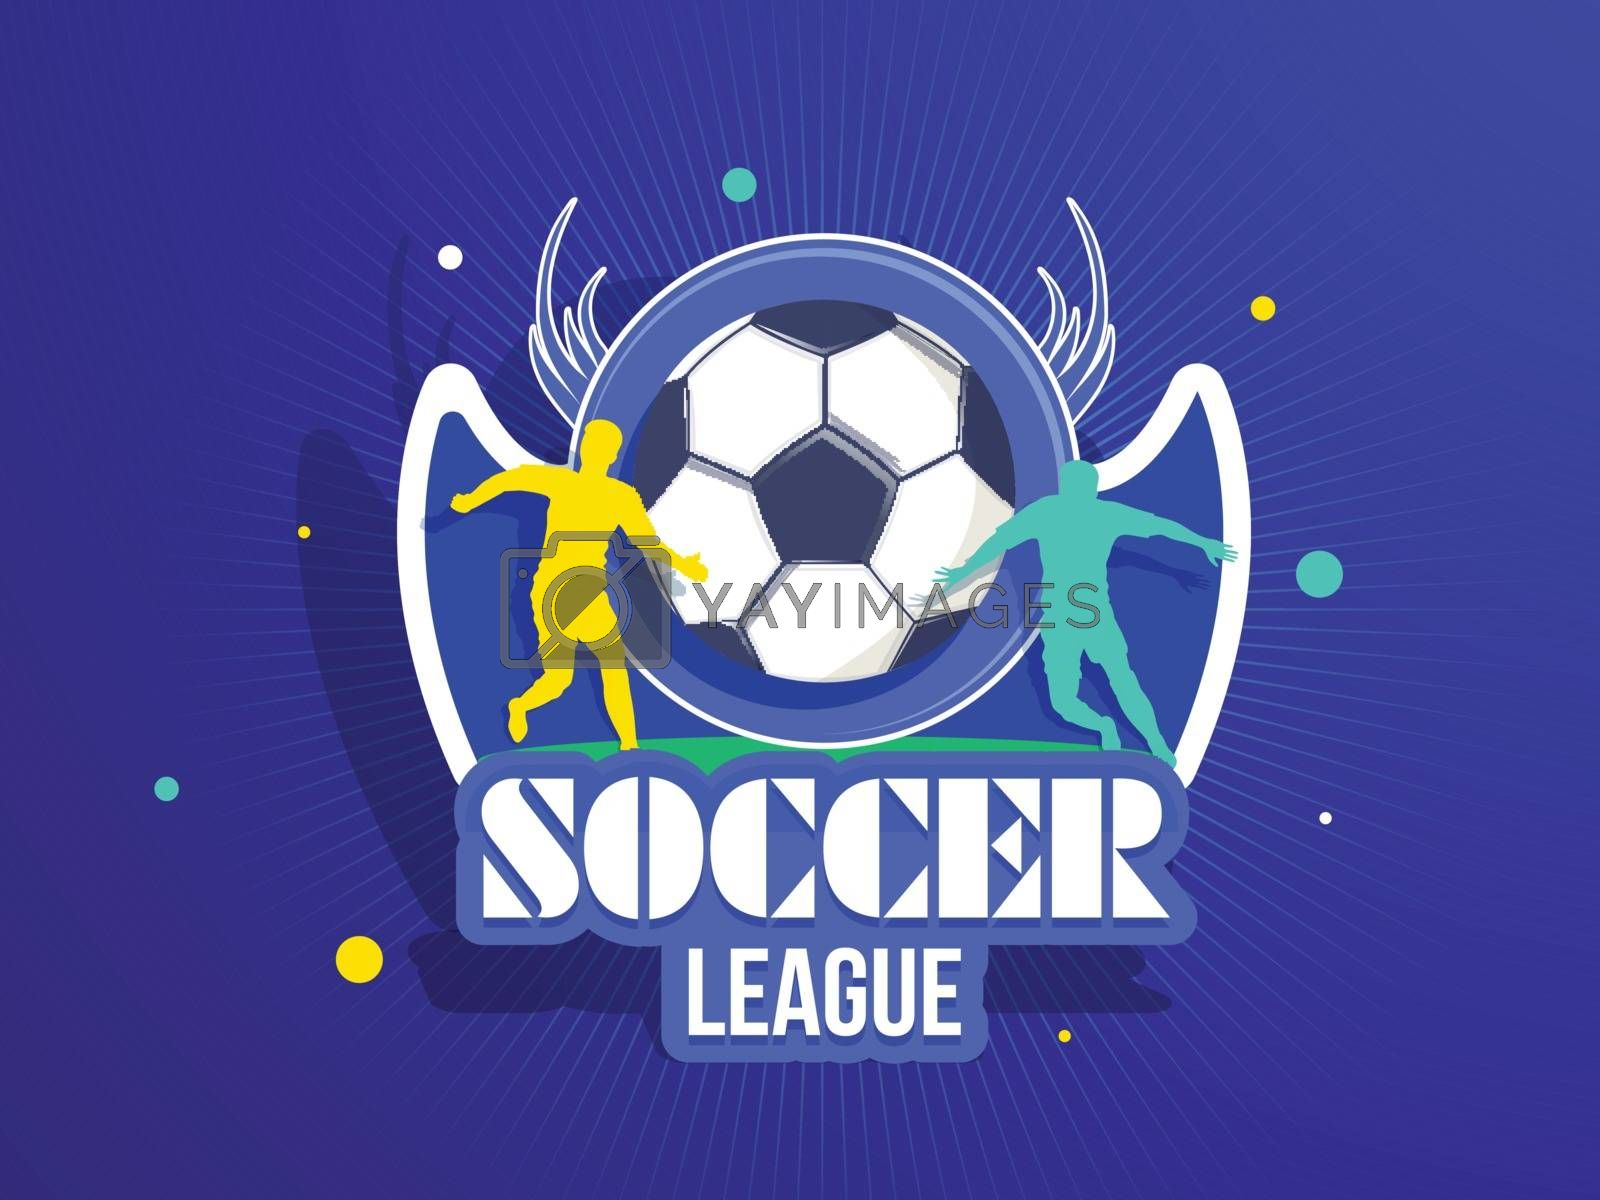 Royalty free image of Soccer League Match header or banner design with illustration of by aispl